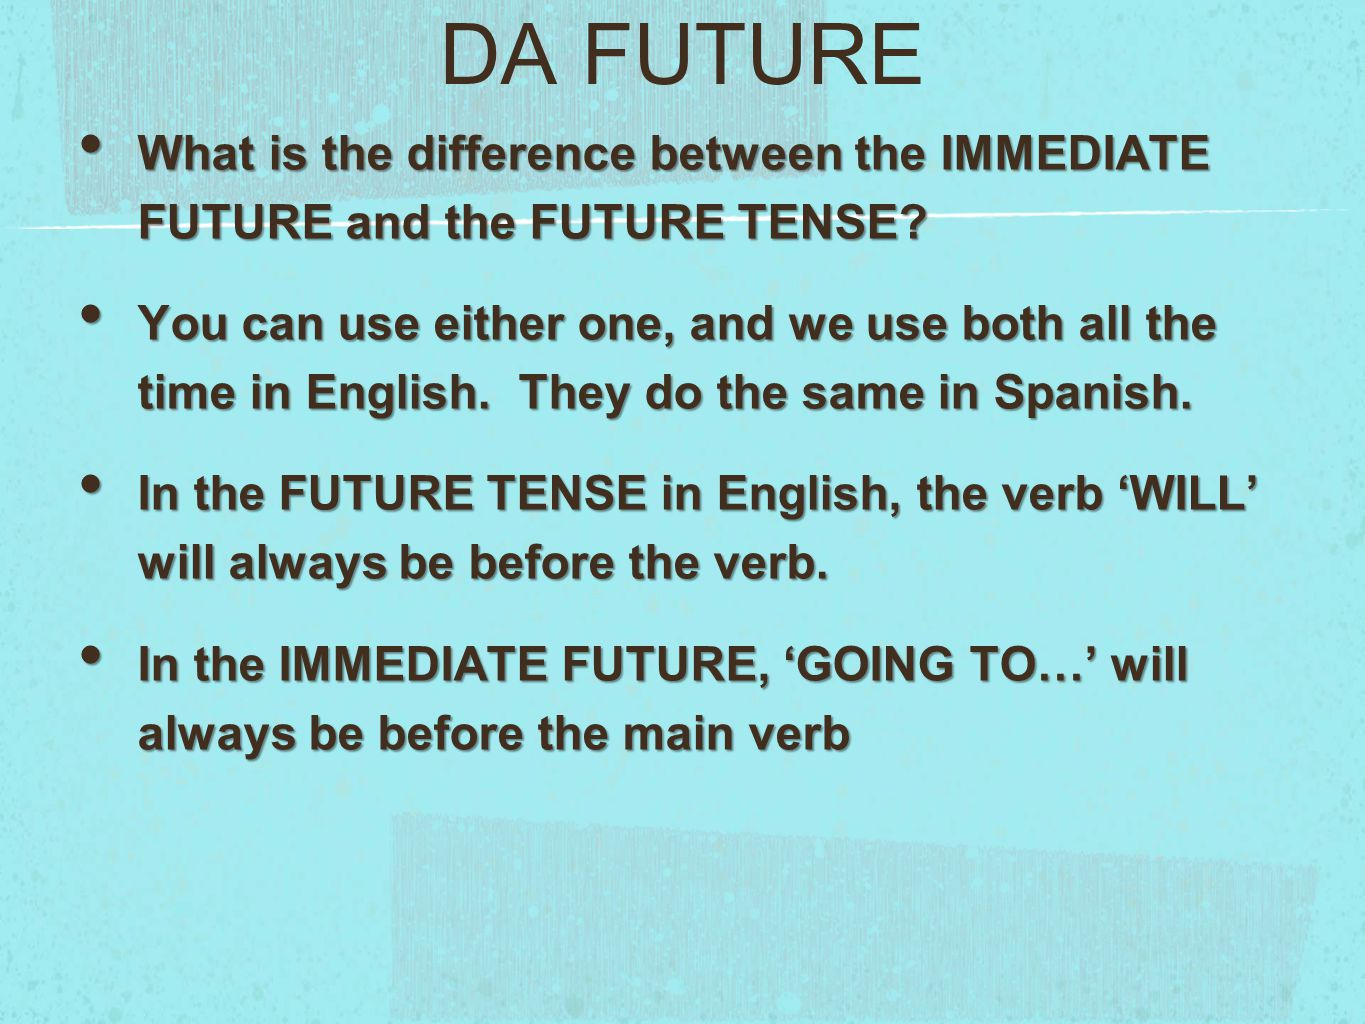 DA FUTURE What is the difference between the IMMEDIATE FUTURE and the FUTURE TENSE.